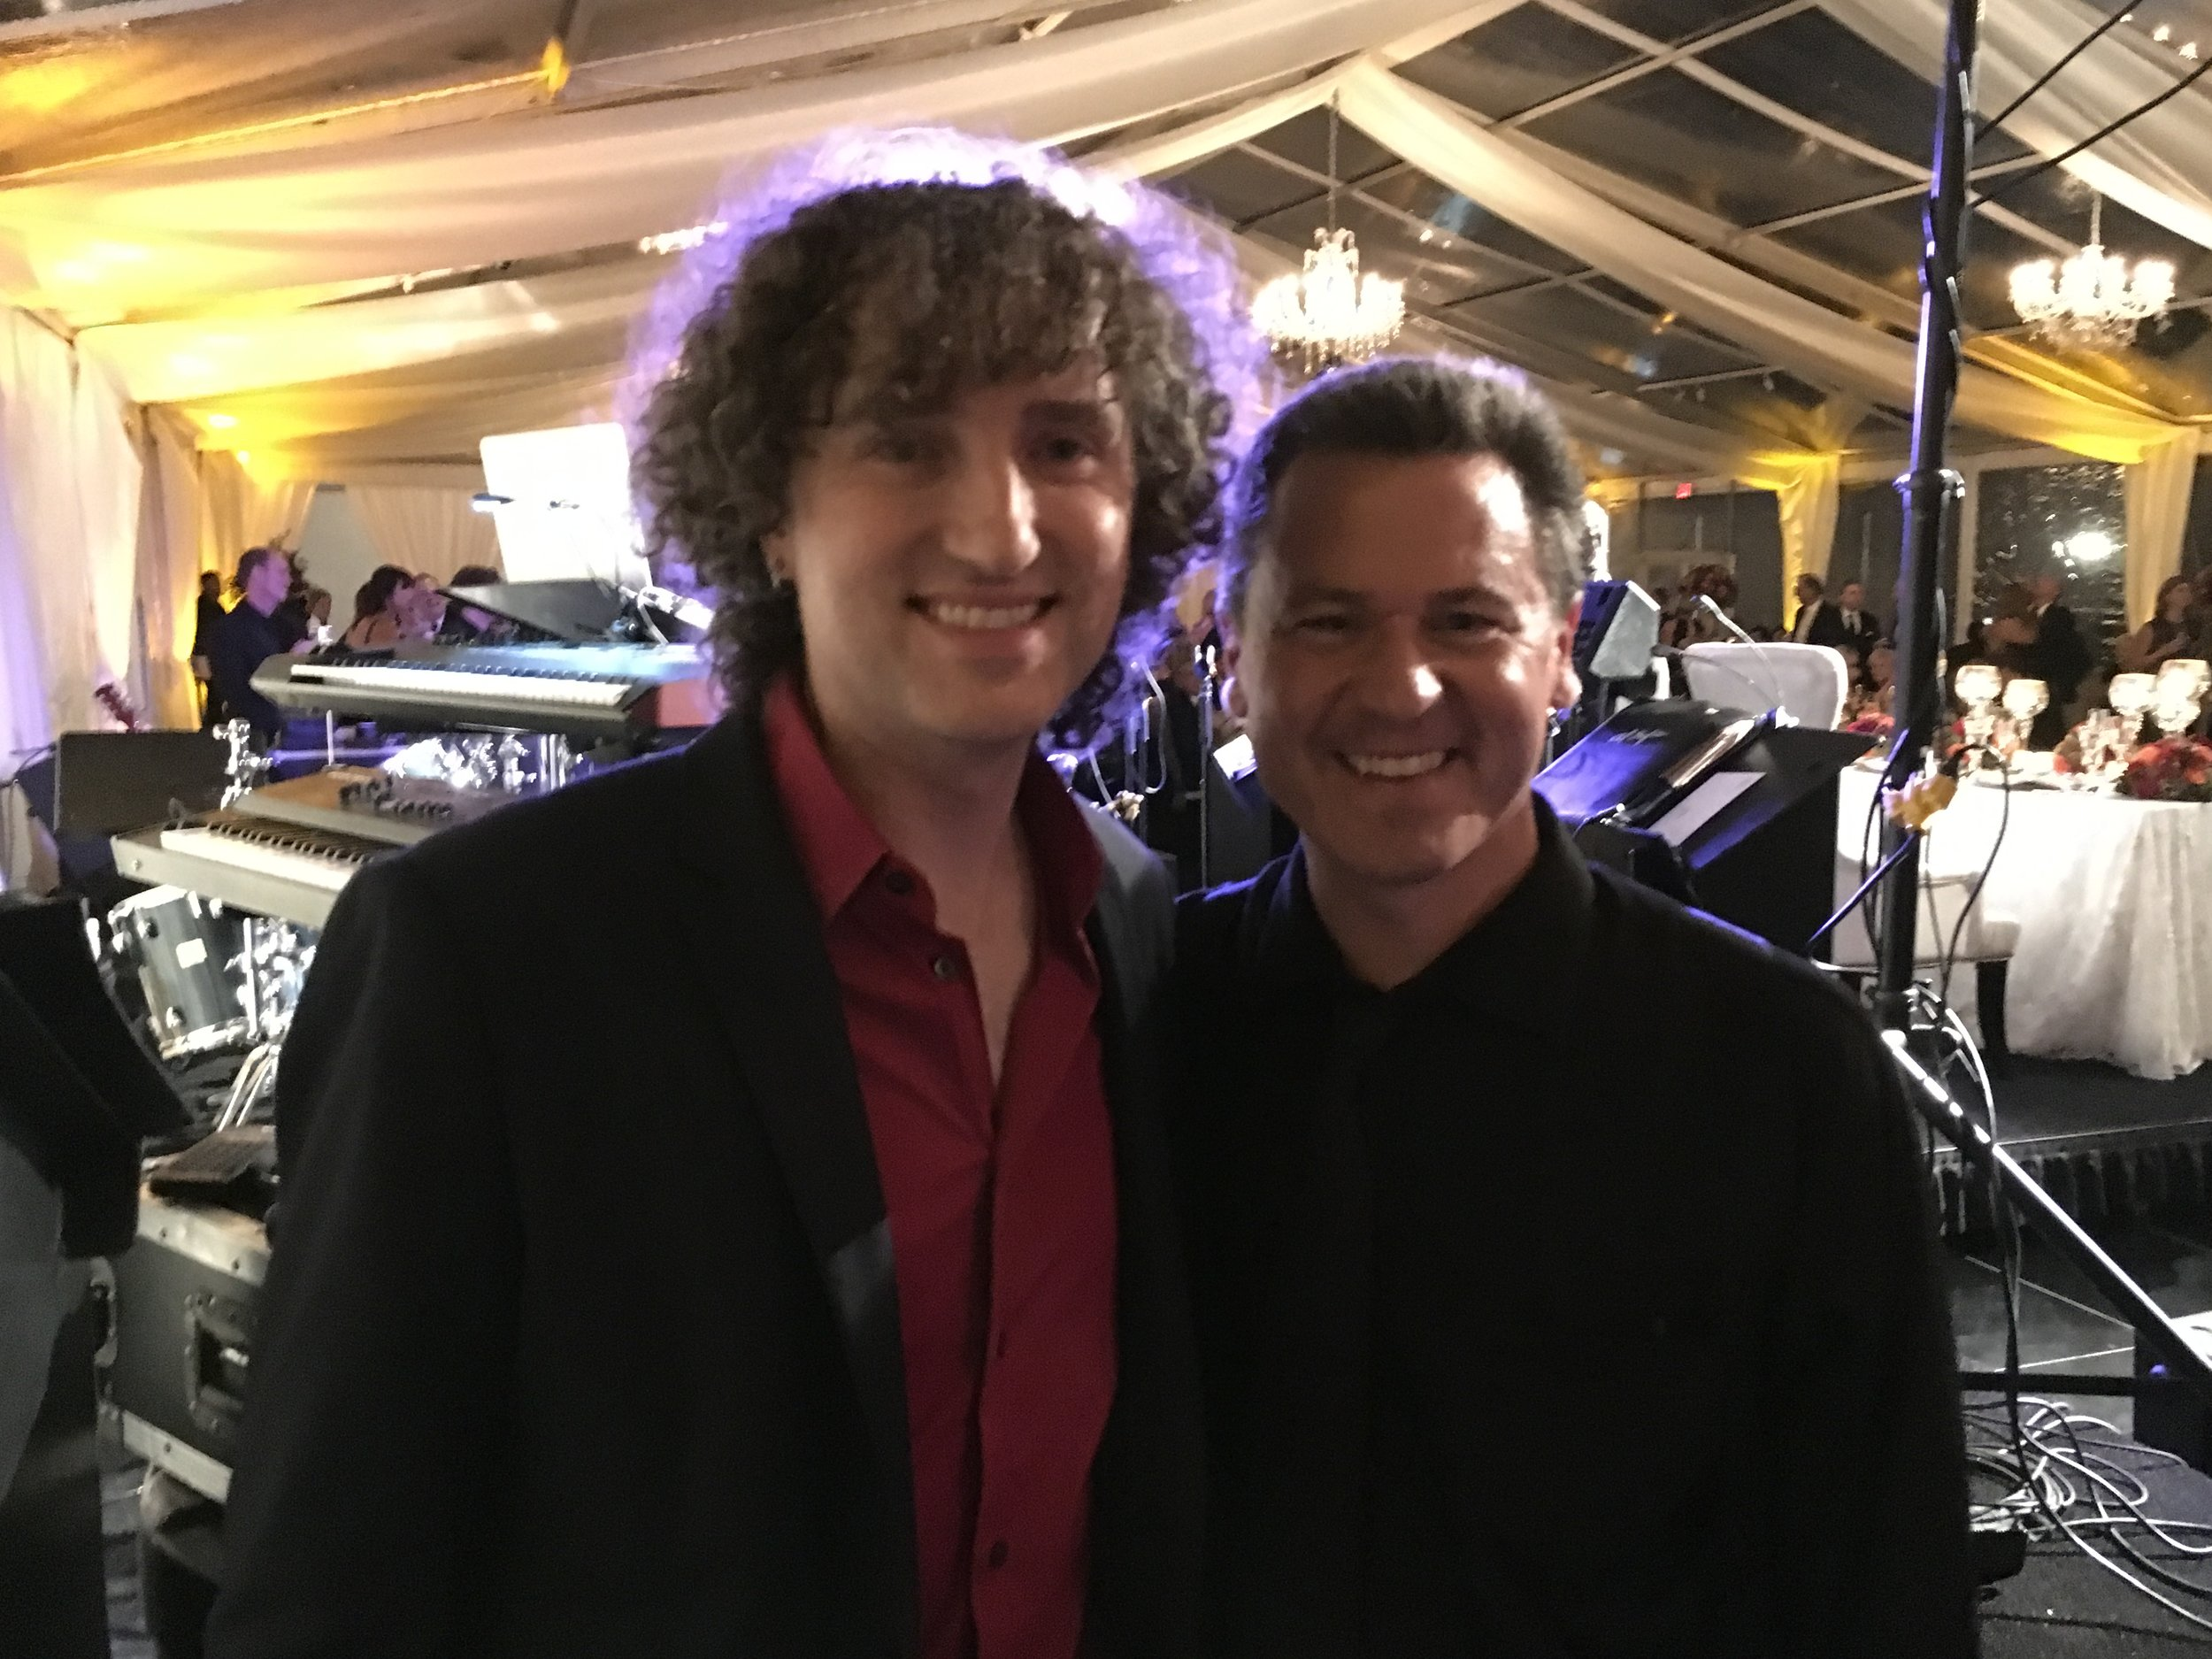 With Jo Dee Messina's keyboard player, November 2016